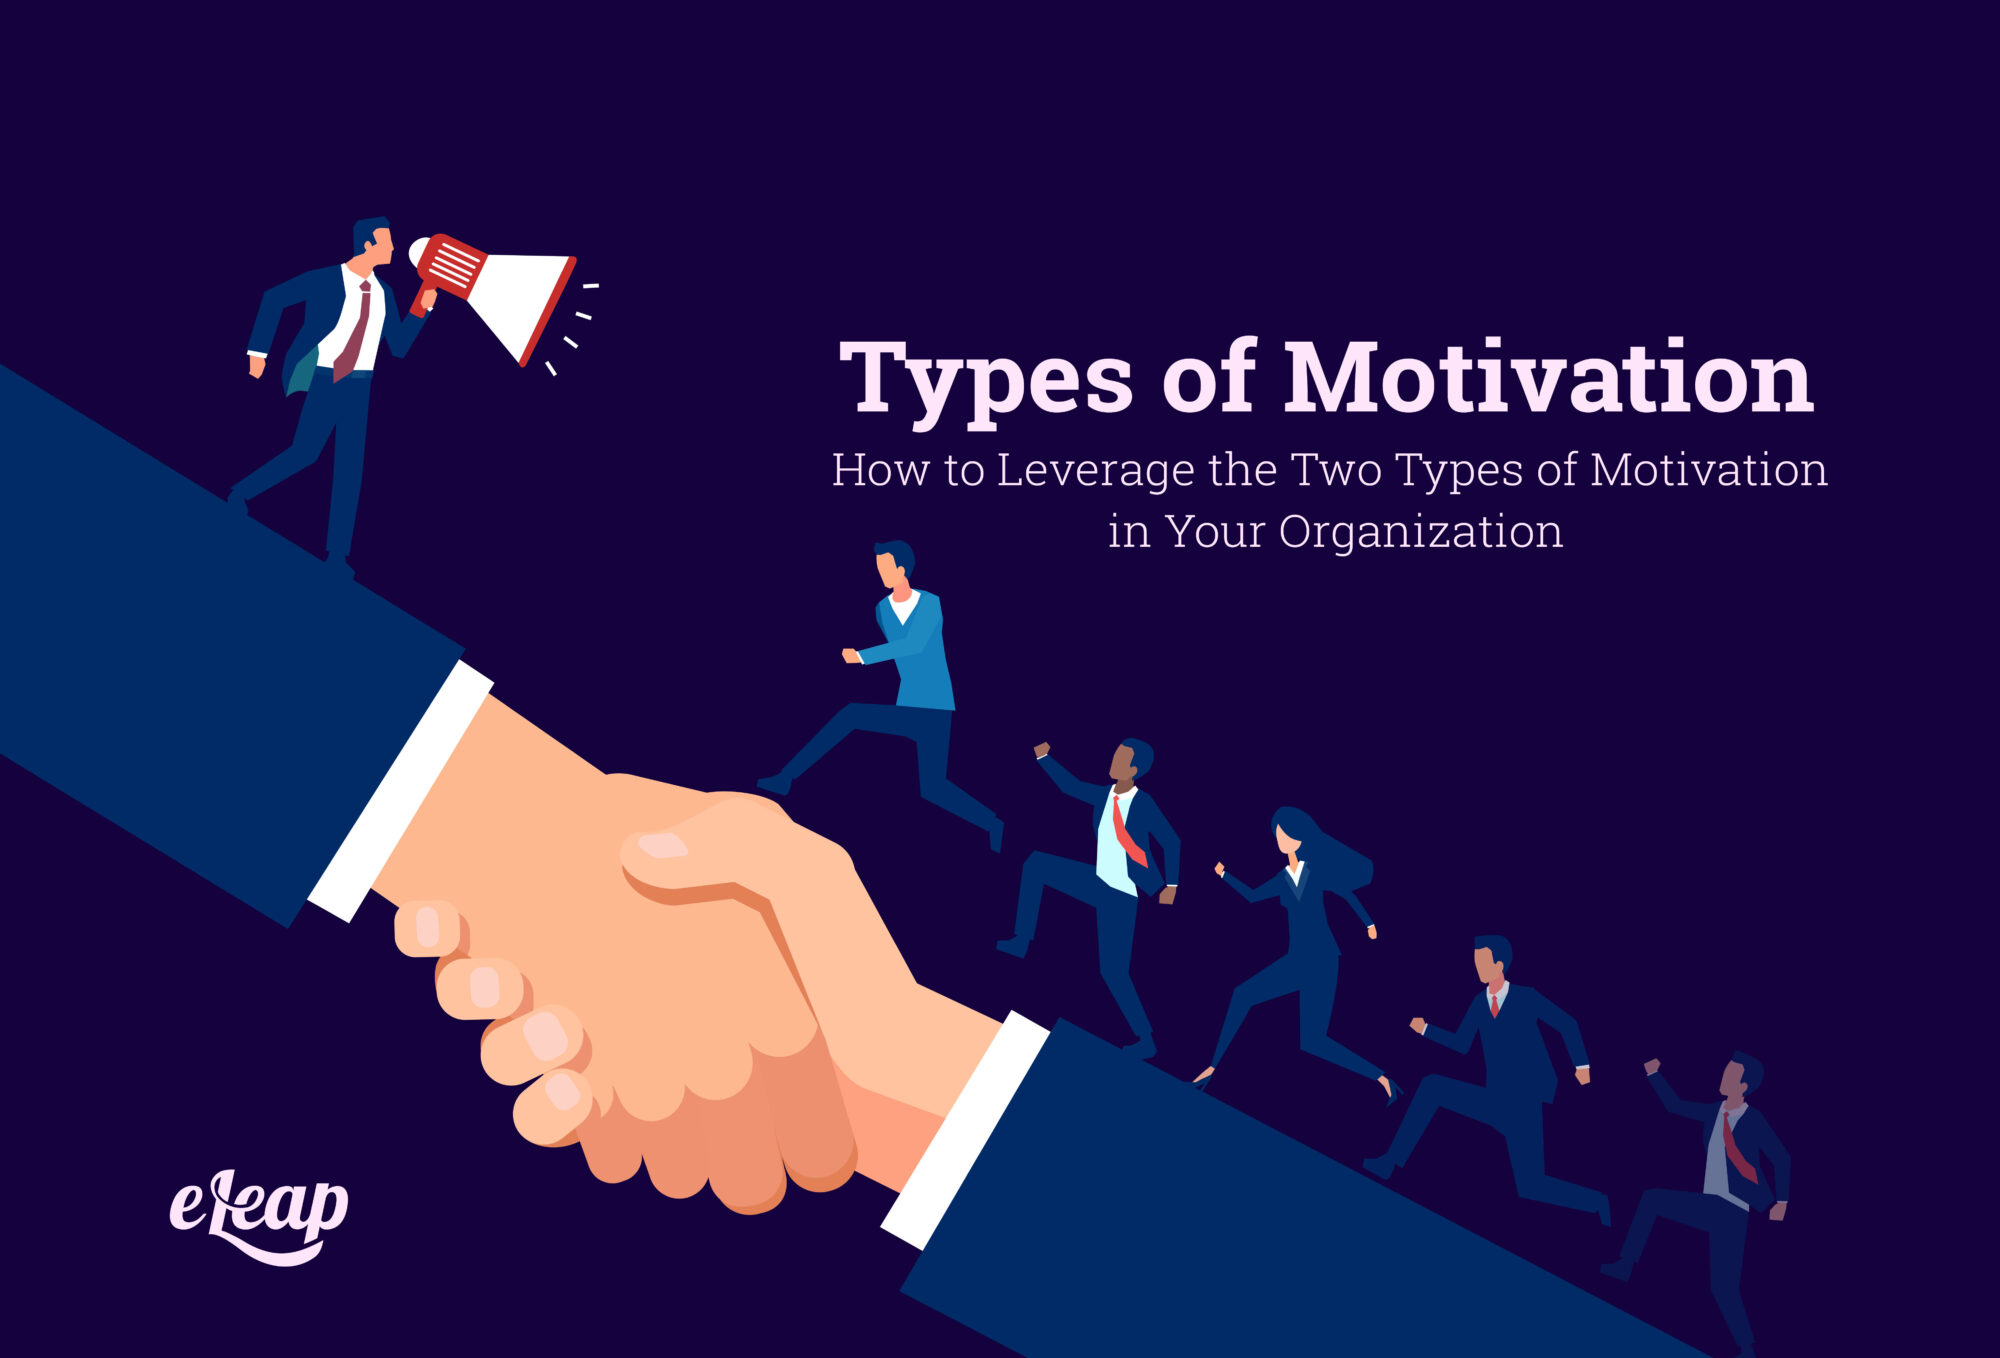 How to Leverage the Two Types of Motivation in Your Organization